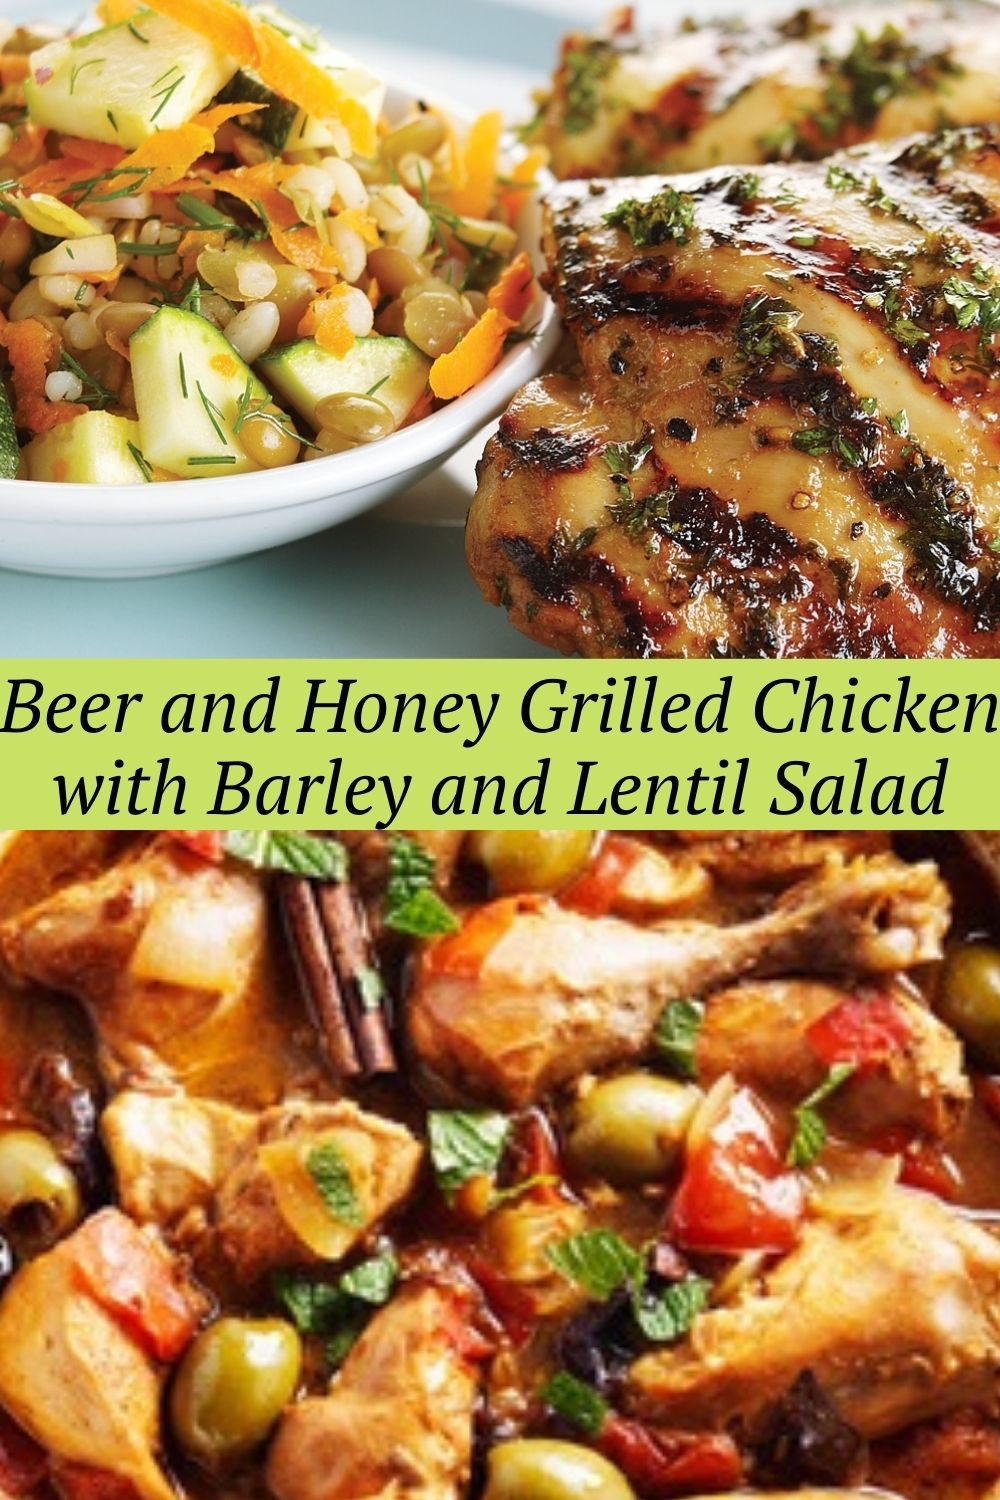 Beer and Honey Grilled Chicken with Barley and Lentil Salad